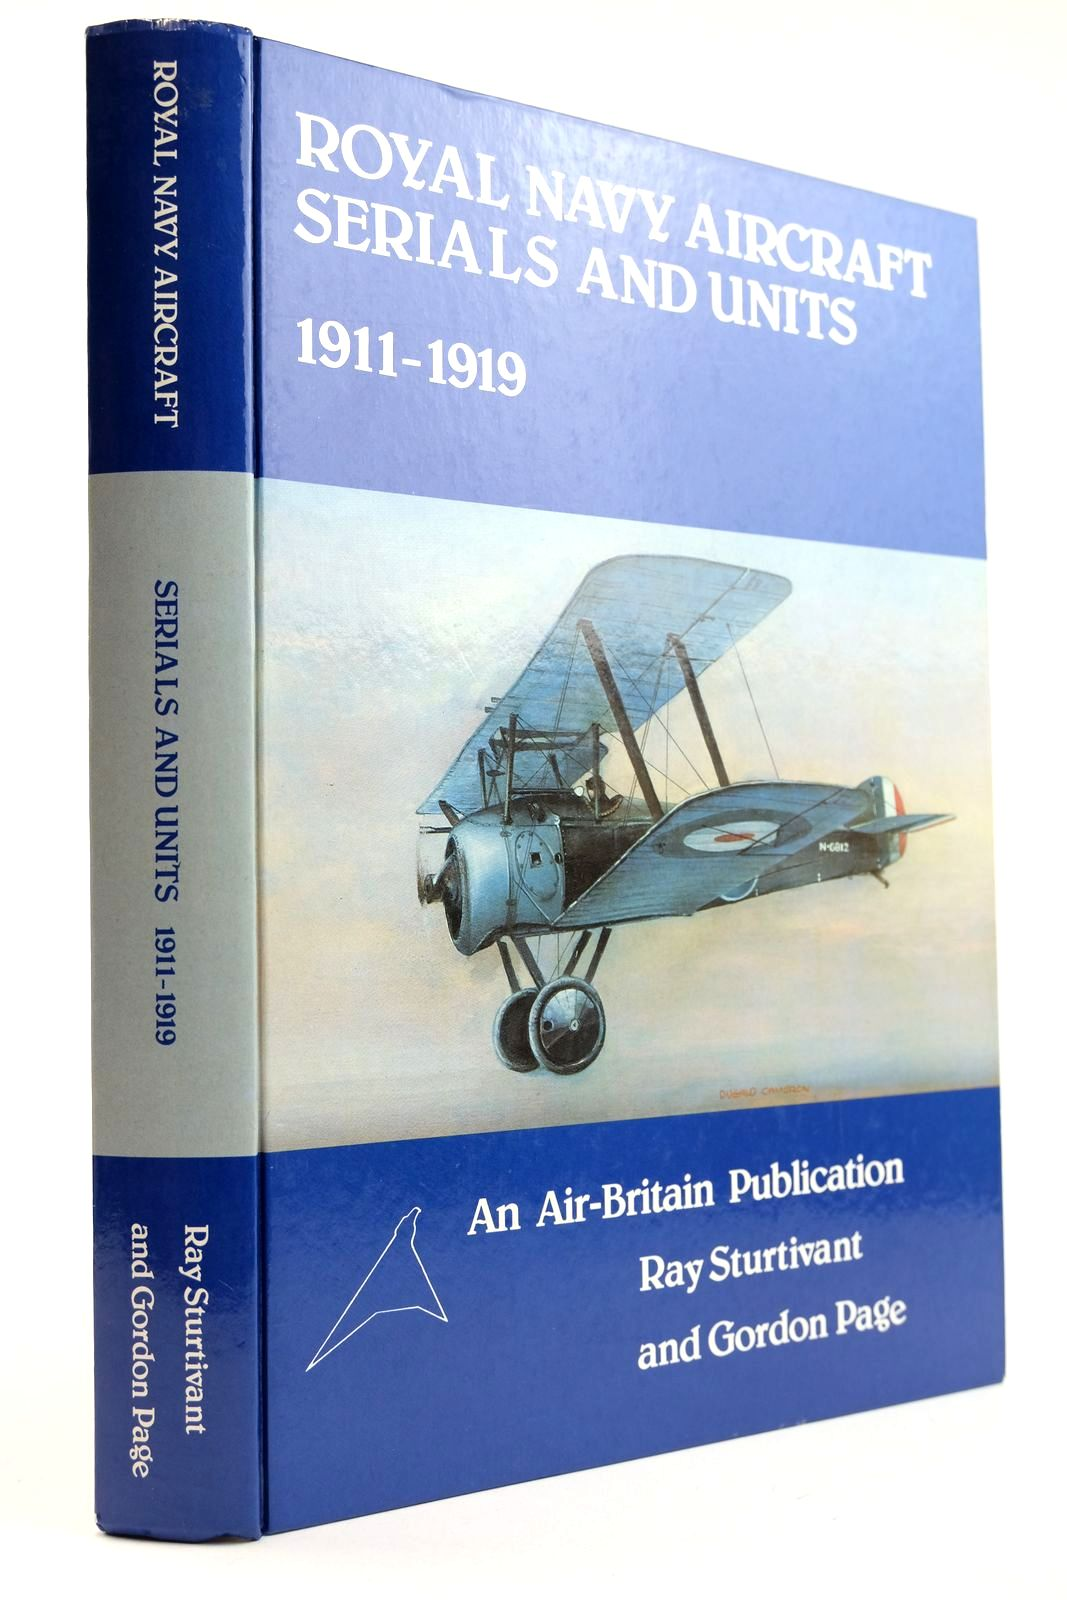 Photo of ROYAL NAVY AIRCRAFT SERIALS AND UNITS 1911-1919 written by Sturtivant, Ray Page, Gordon published by Air-Britain (Historians) Ltd. (STOCK CODE: 2132226)  for sale by Stella & Rose's Books